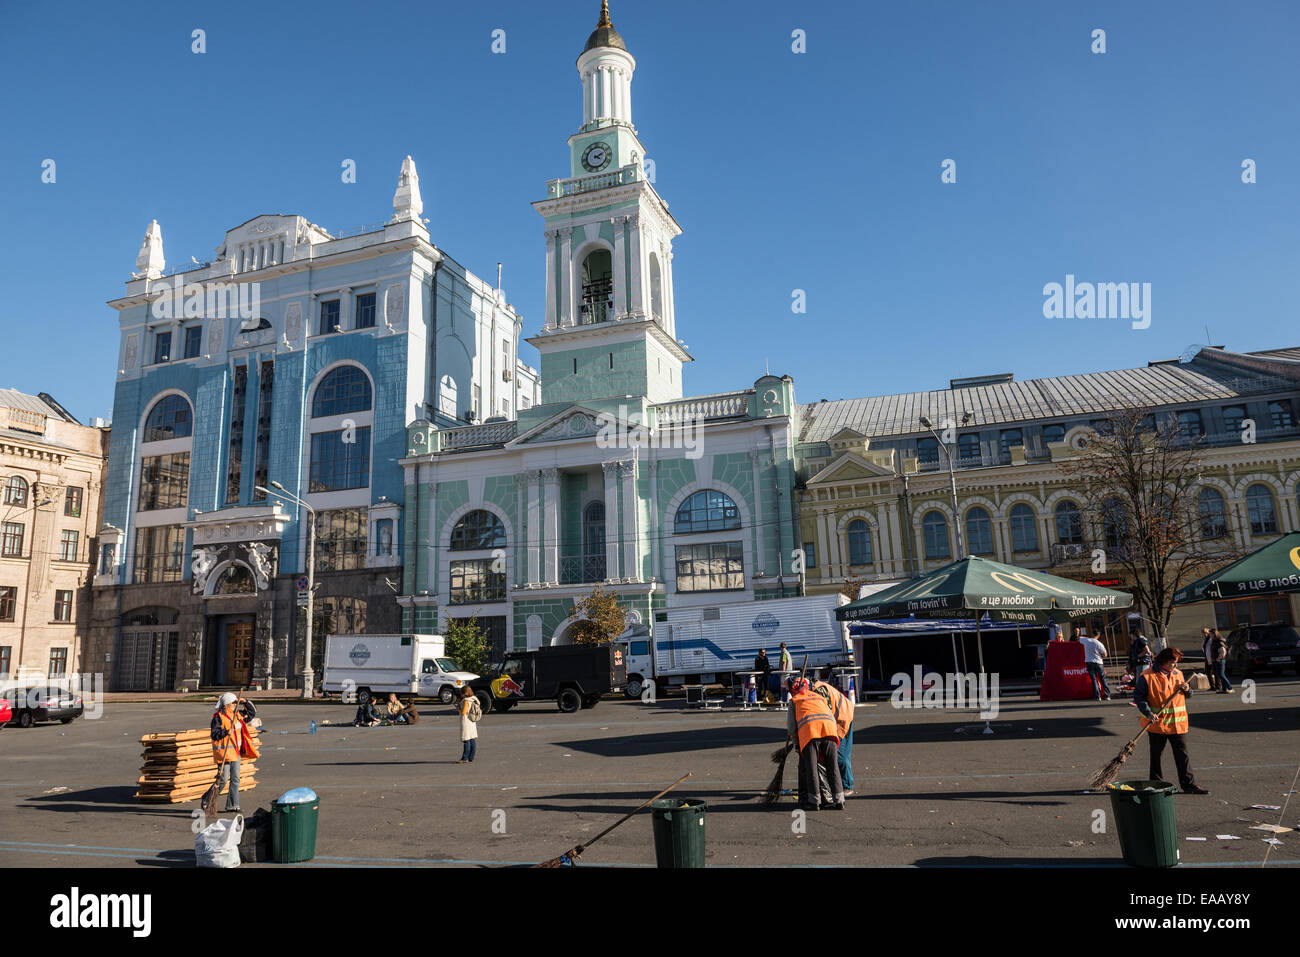 General Directorate of National Bank of Ukraine and former Greek Monastery on Kontraktova Square in Kiev, Ukraine - Stock Image